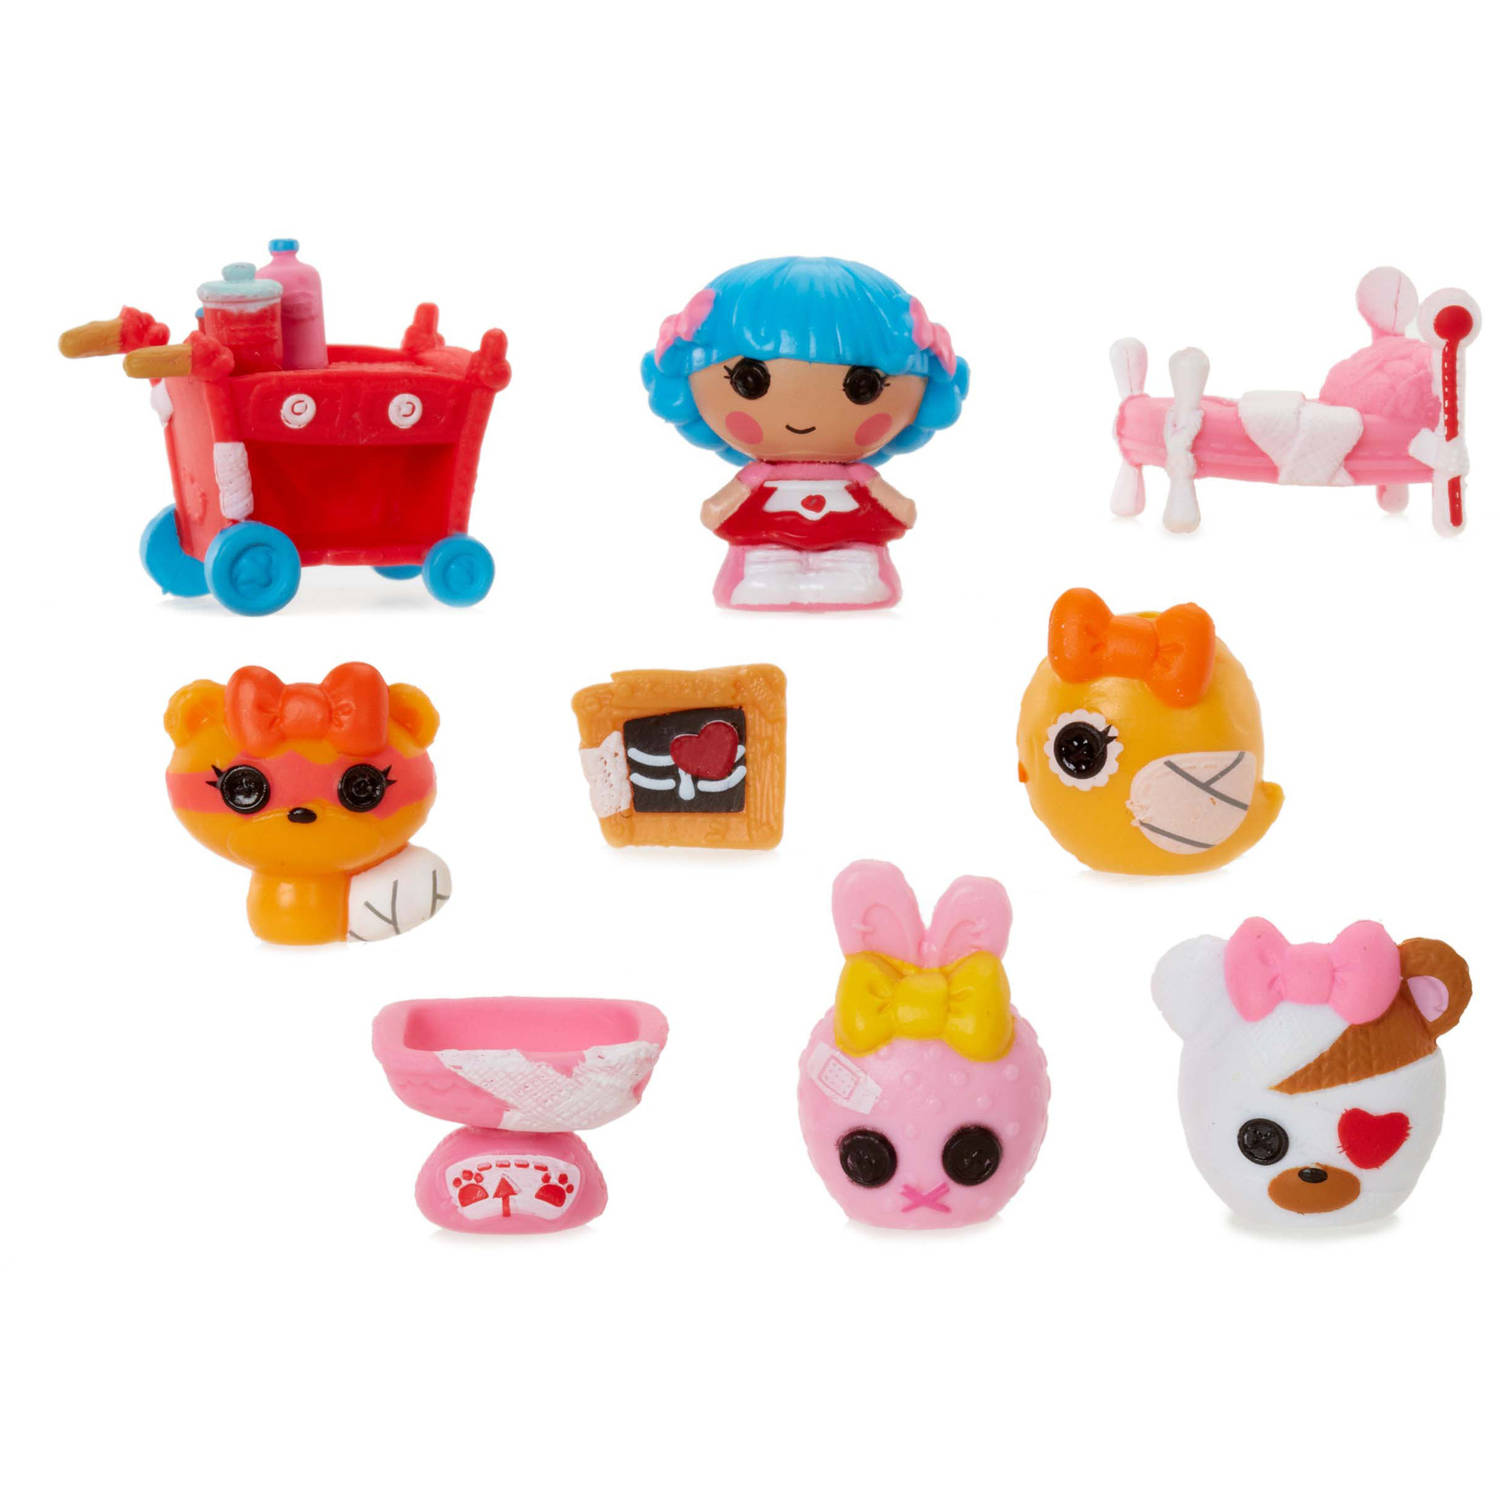 Lalaloopsy Tinies 10 Pack Series 5, Rosy's Pet Hospital